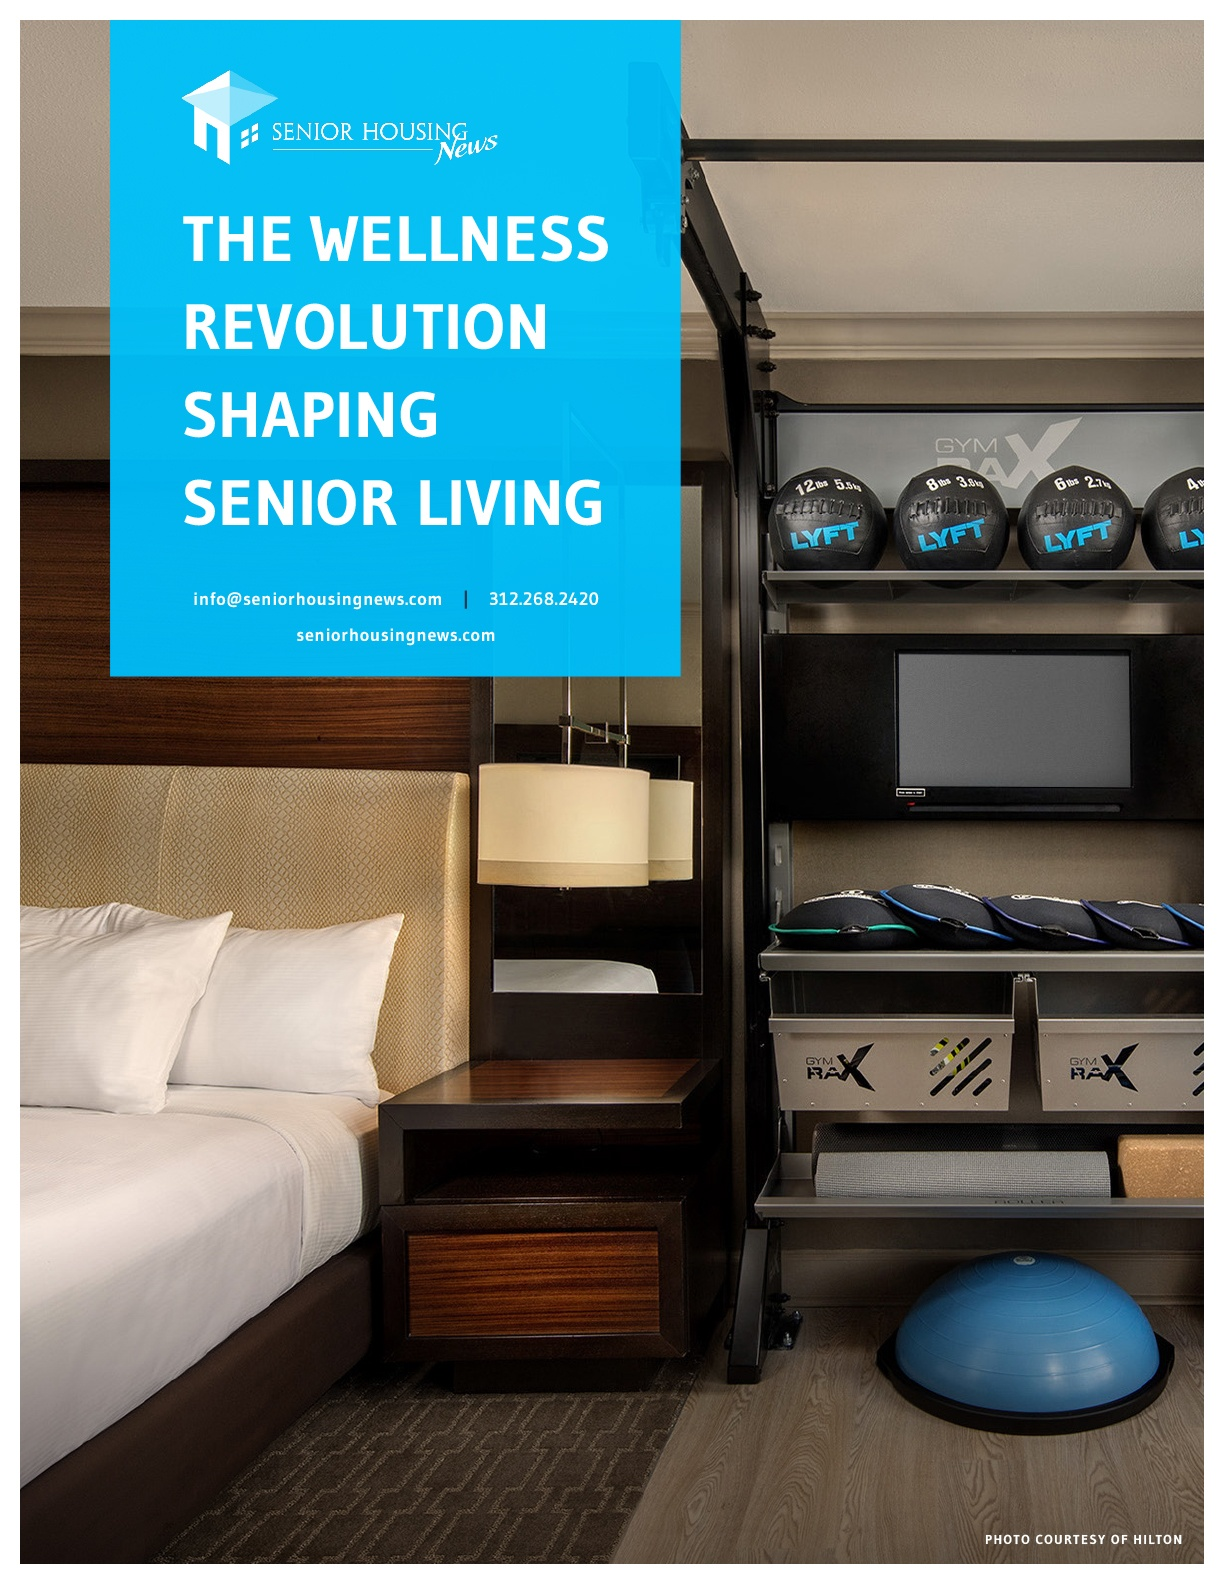 The Wellness Revolution Shaping Senior Living